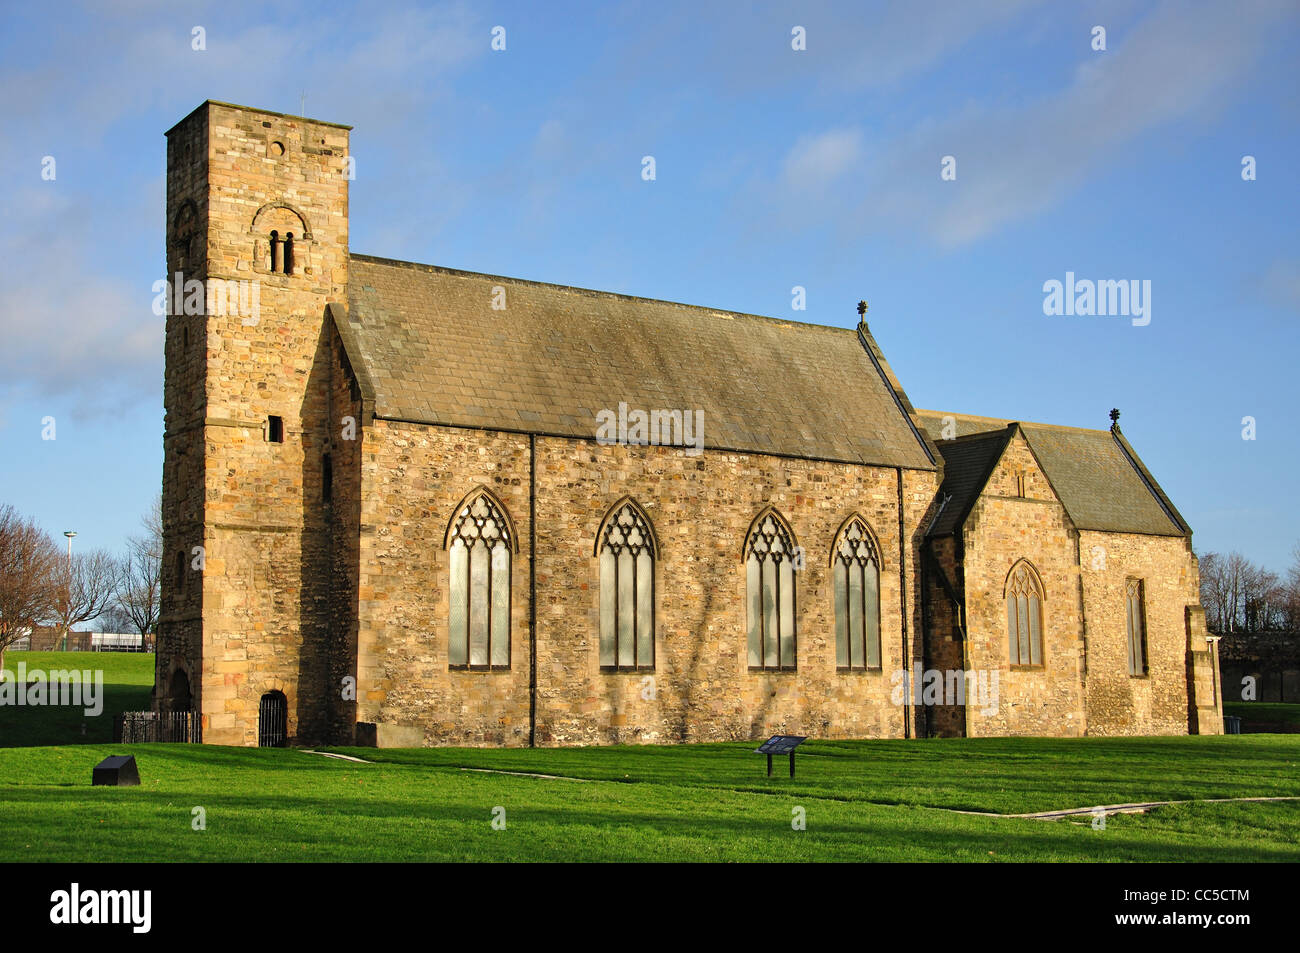 7th century St Peter's Church and monastic site, Monkwearmouth ...